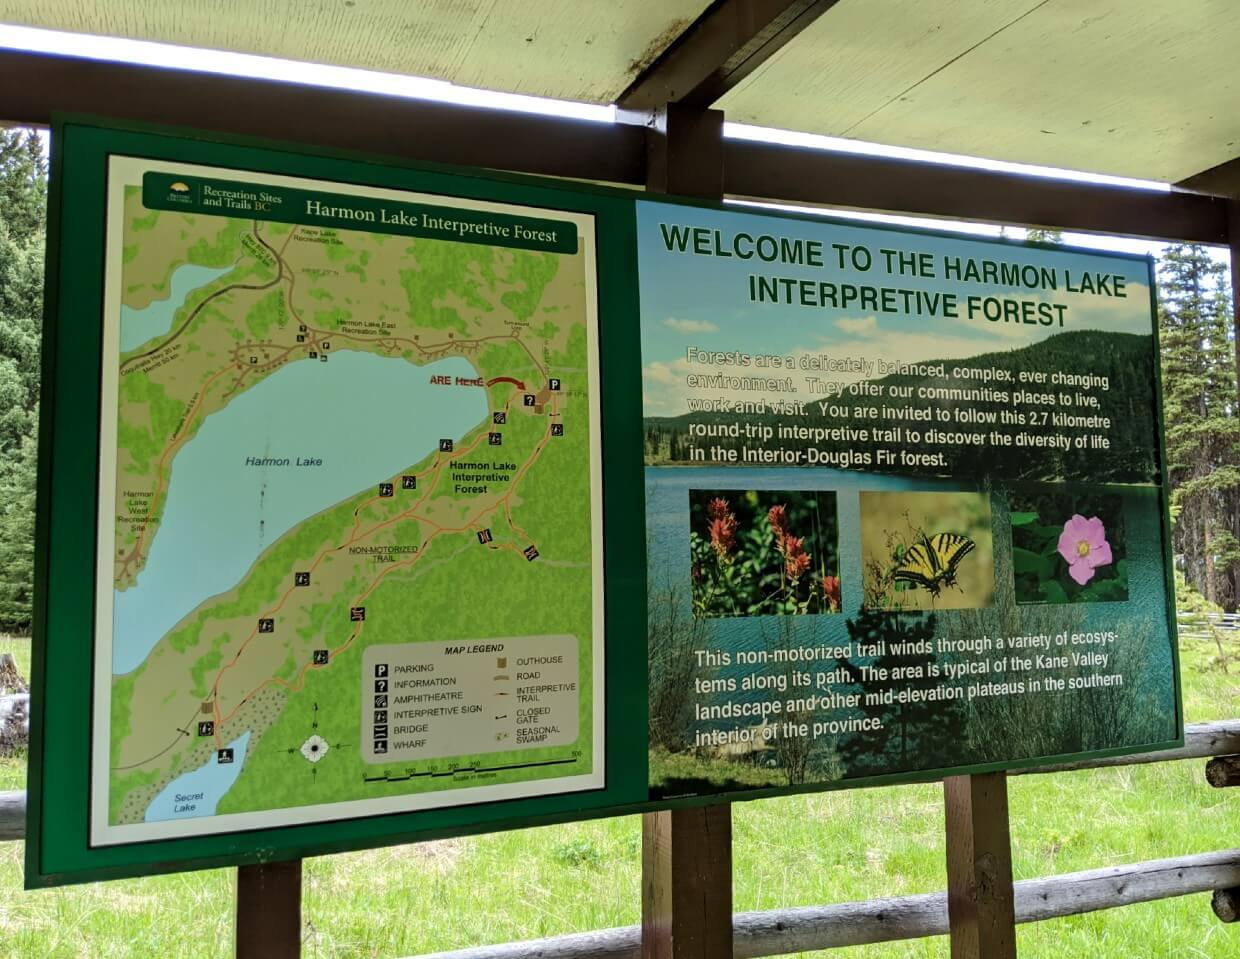 Welcome to Harmon Lake Interpretive Forest signage - there is a map on the left and an introduction on the right